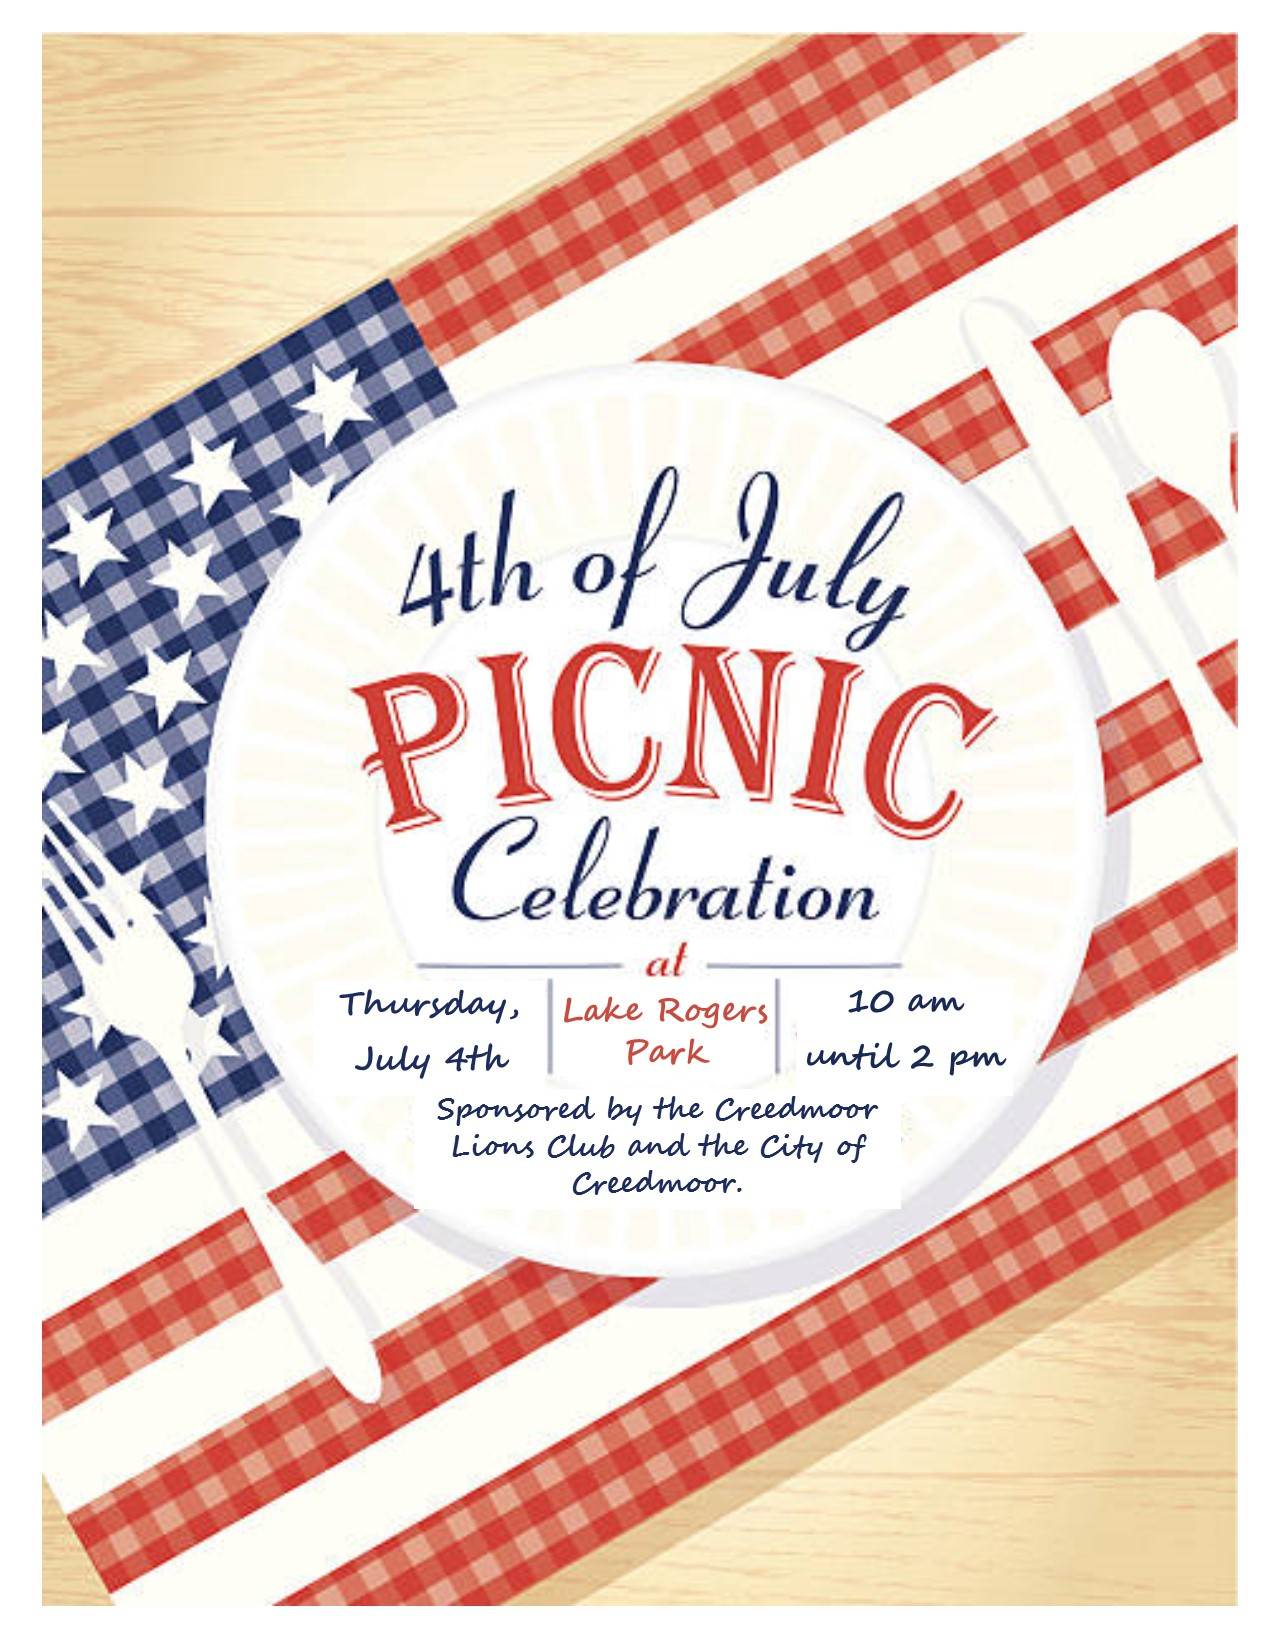 Fourth of July Picnic 2019